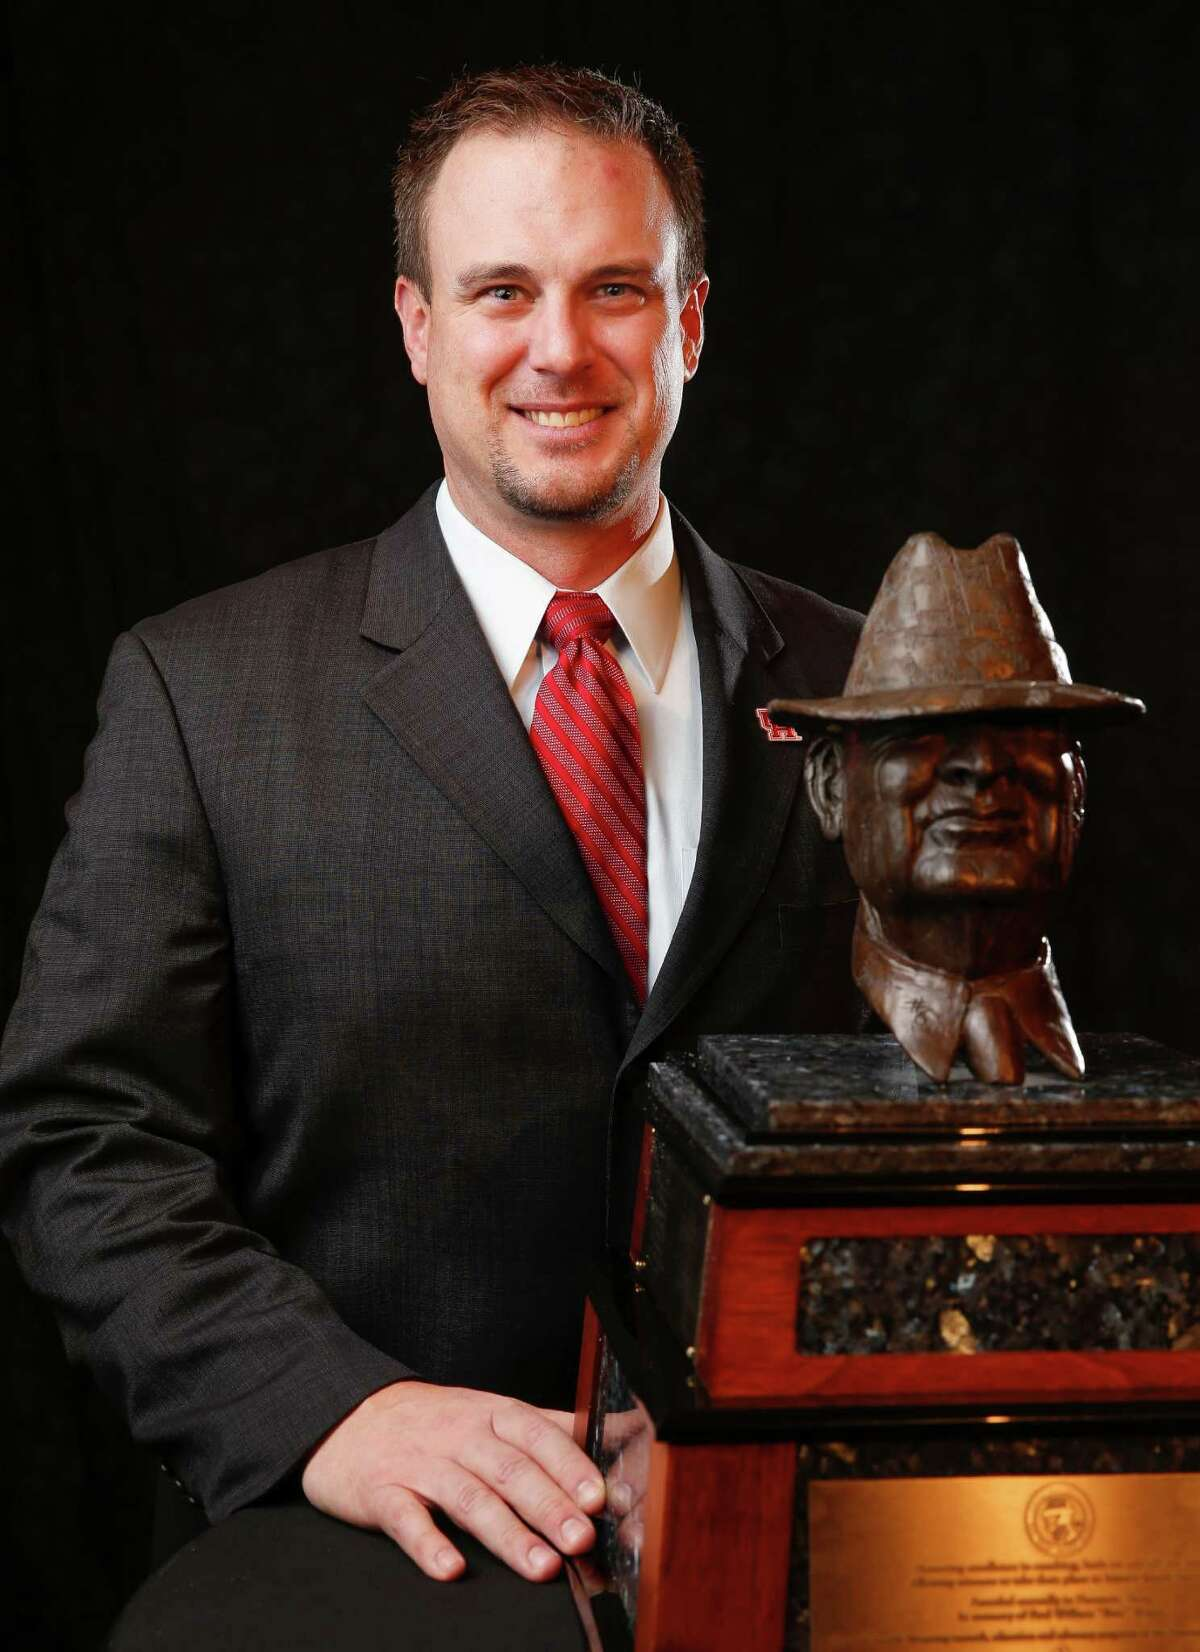 Houston football coach Tom Herman poses for a photo before the Paul